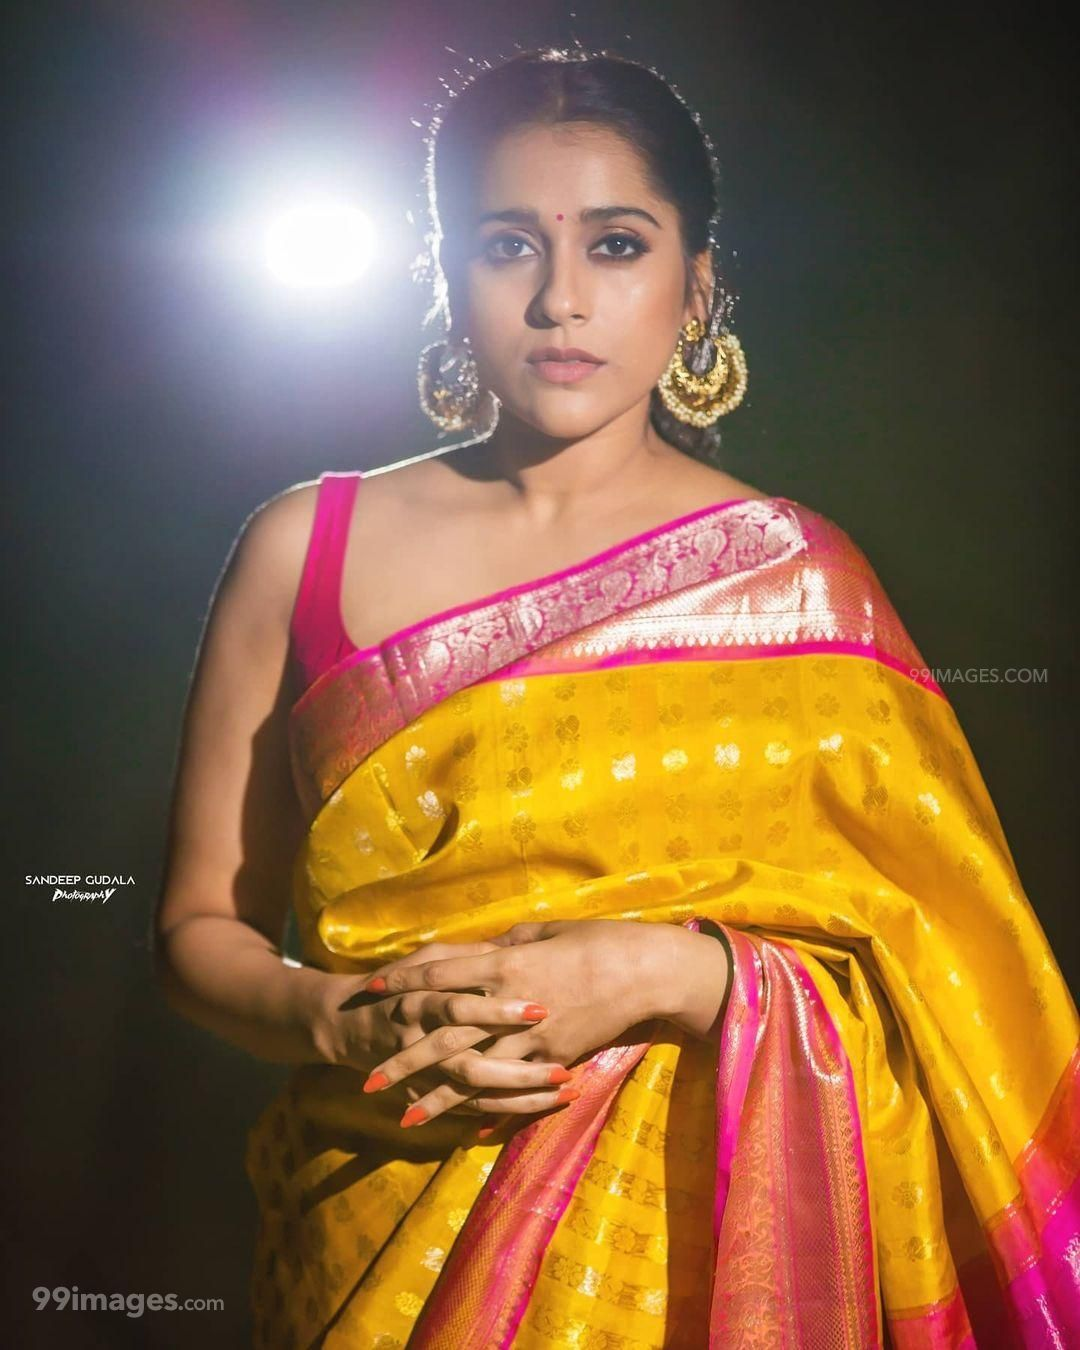 Rashmi Gautam HD Wallpapers (Desktop Background / Android / iPhone) (1080p, 4k)